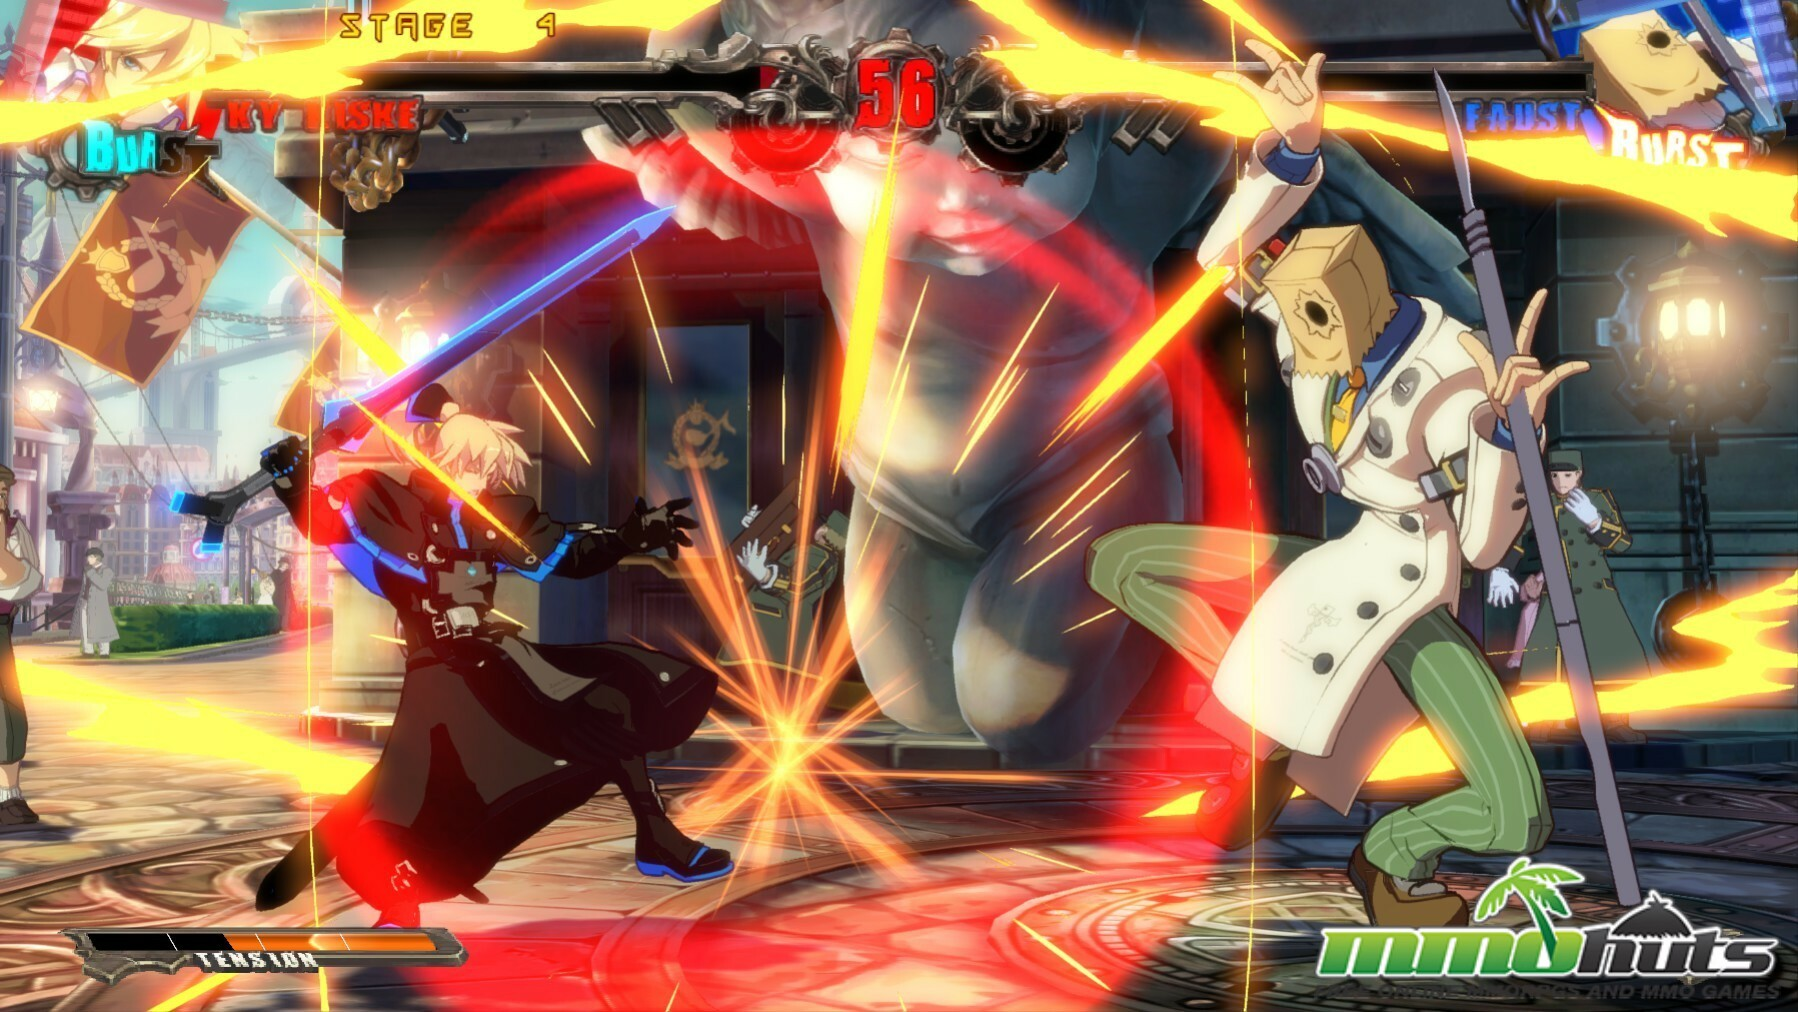 Guilty Gear Xrd -SIGN-: Legitimizing PC Fighters